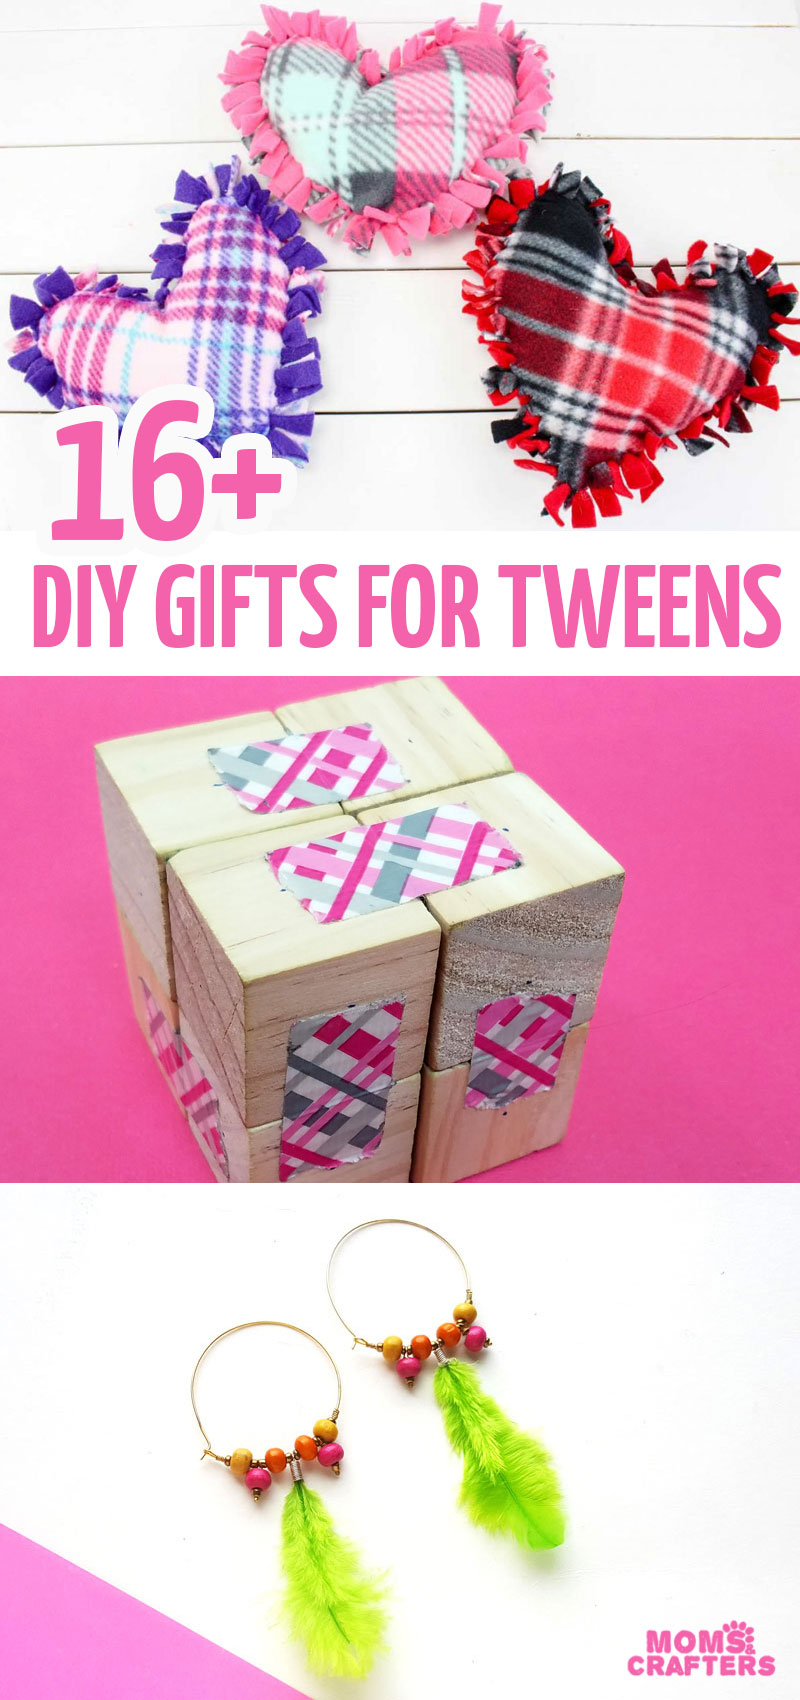 Over 16 creative gift ideas to make for tweens and teens! These DIY gifts for tweens are fun and functional, and include jewelry making, toys, LEGO, ideas for girls and boys, and more!